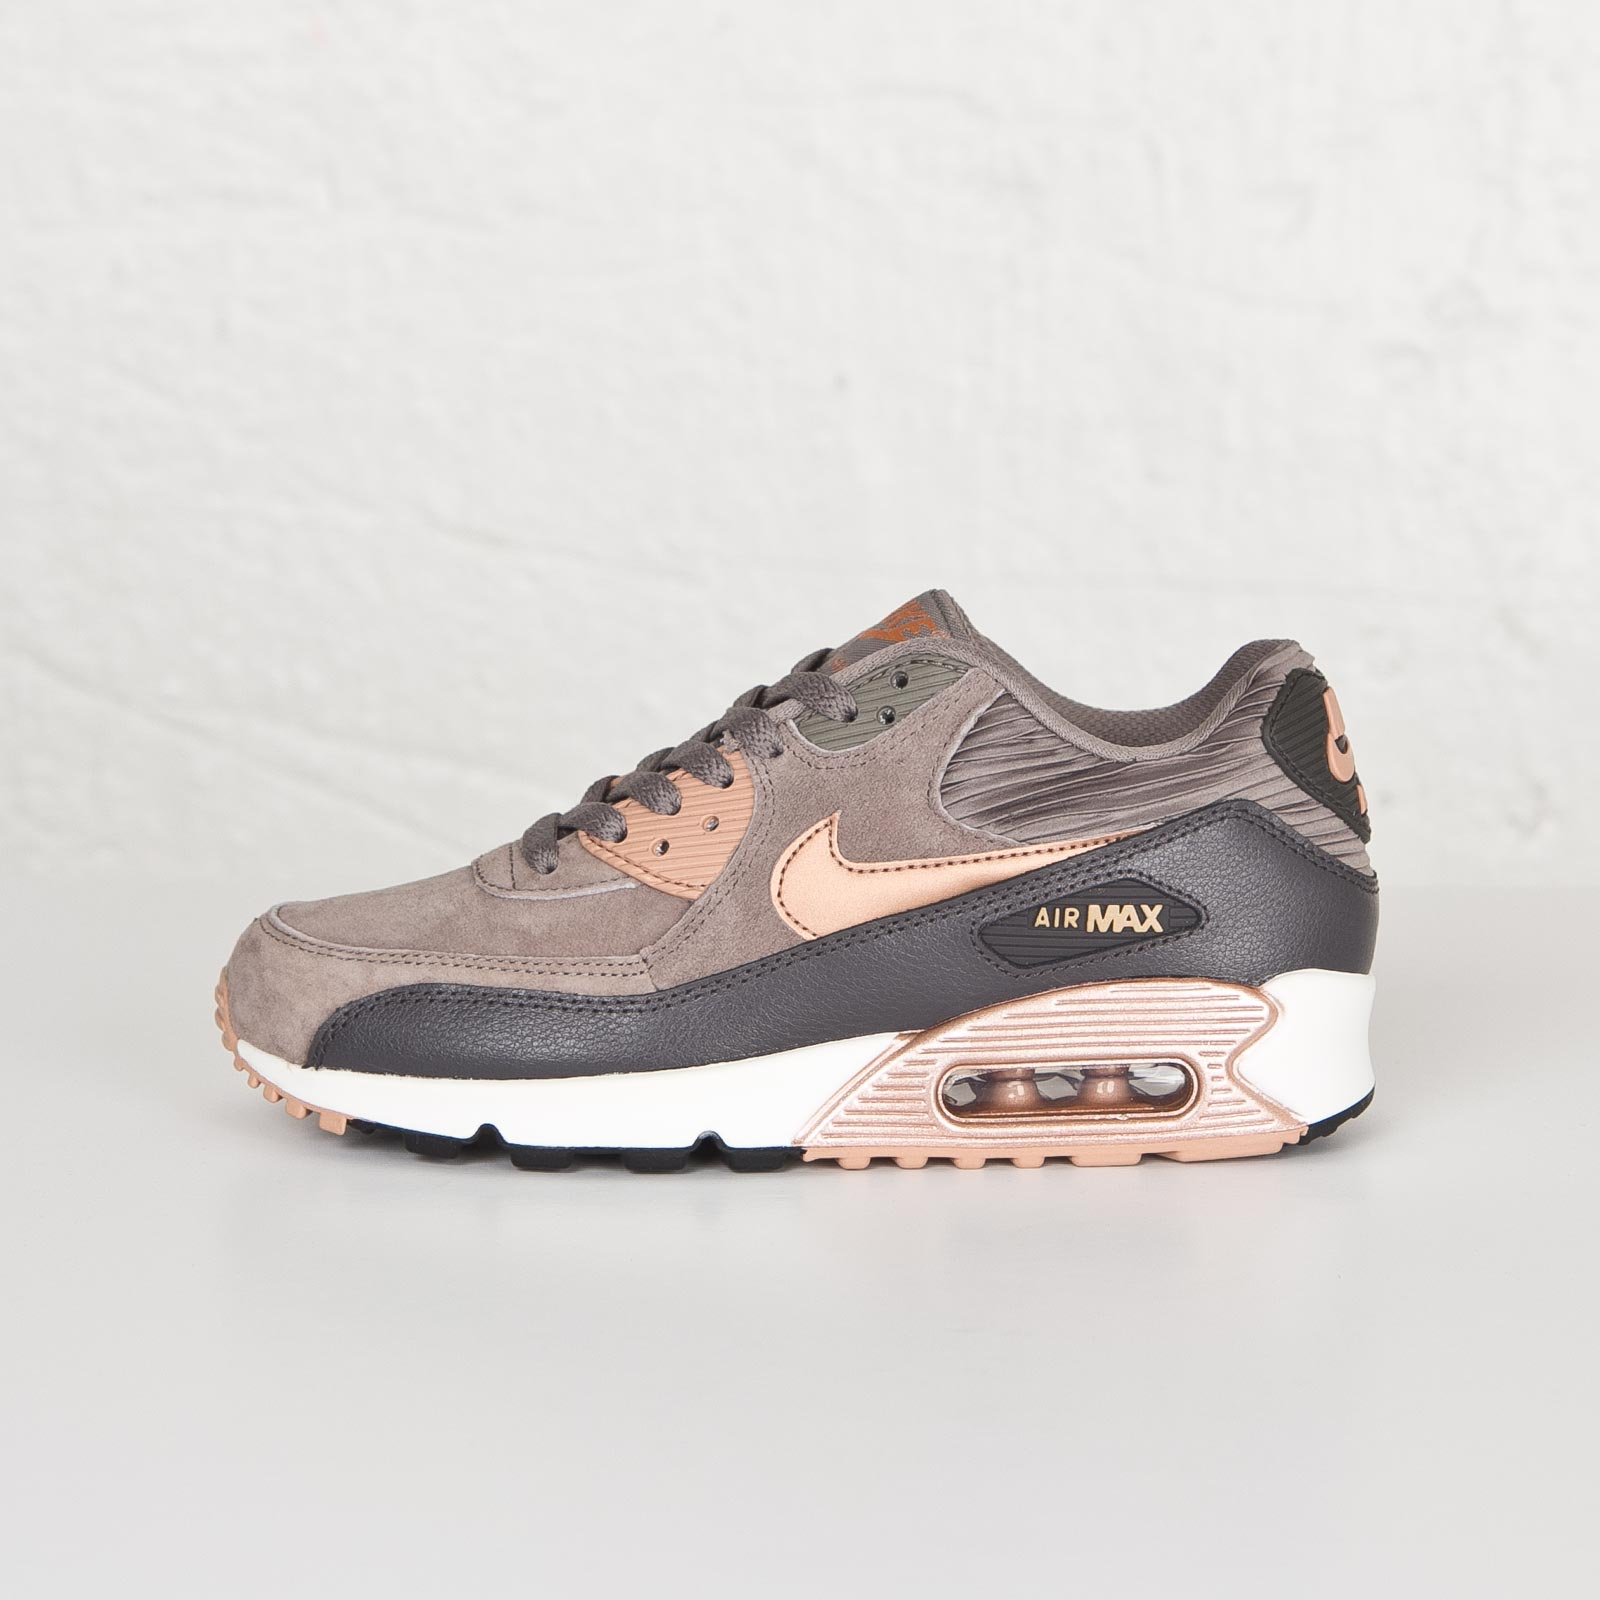 newest 89f4a 29901 Nike Wmns Air Max 90 Leather - 768887-201 - Sneakersnstuff | sneakers &  streetwear online since 1999